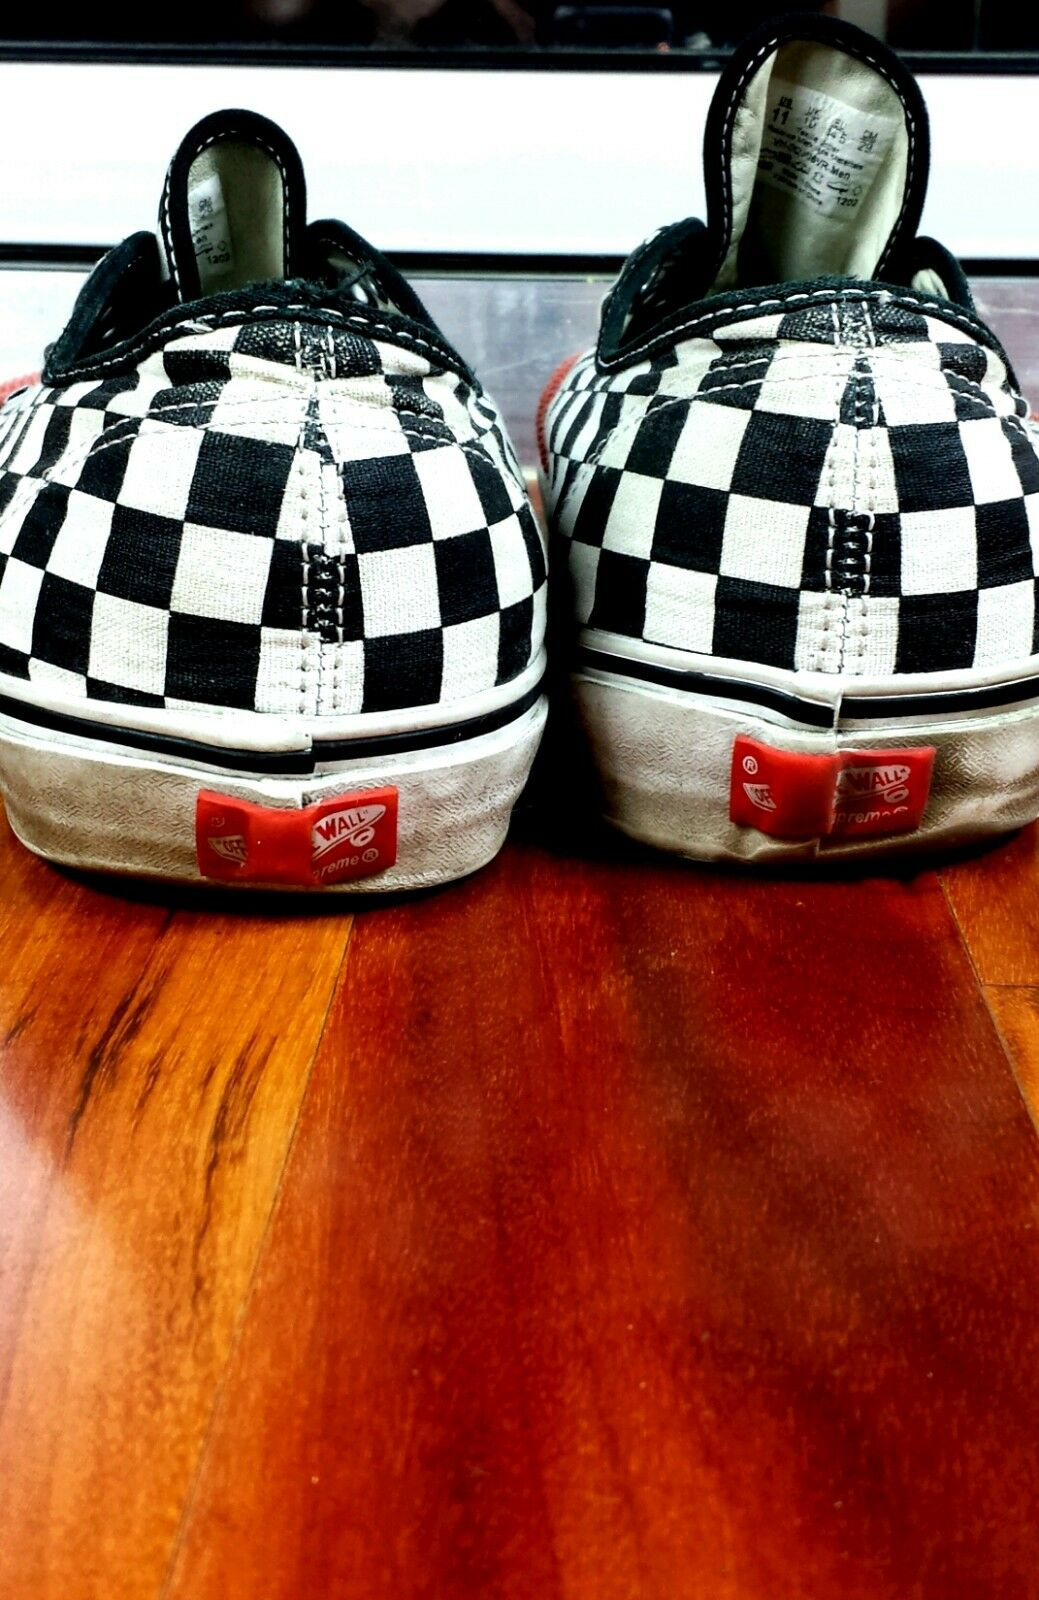 Supreme Vans Checkerboard Checkerboard Checkerboard Corduroy Coral Red Check 10.5 w  Org Box fef286